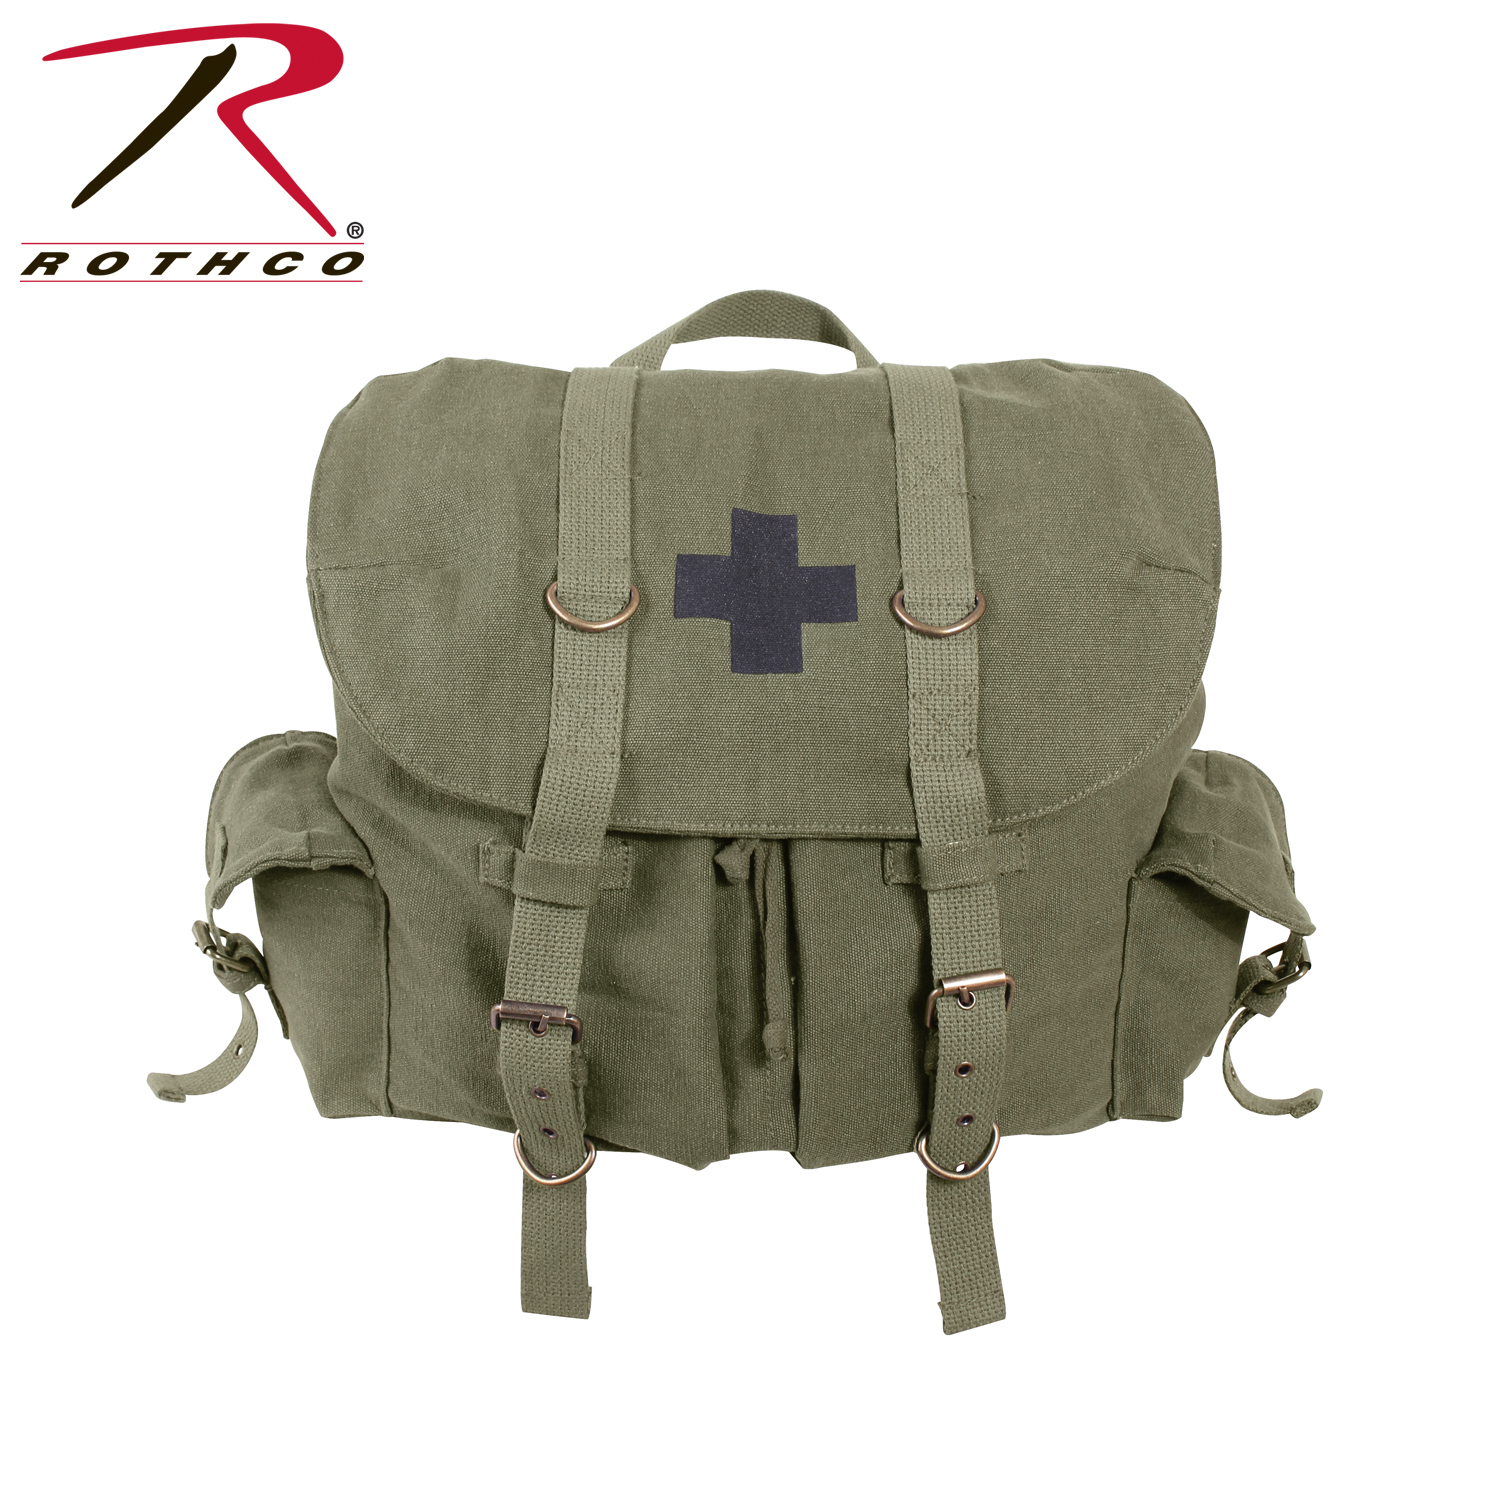 rothco pact weekender backpack with cross